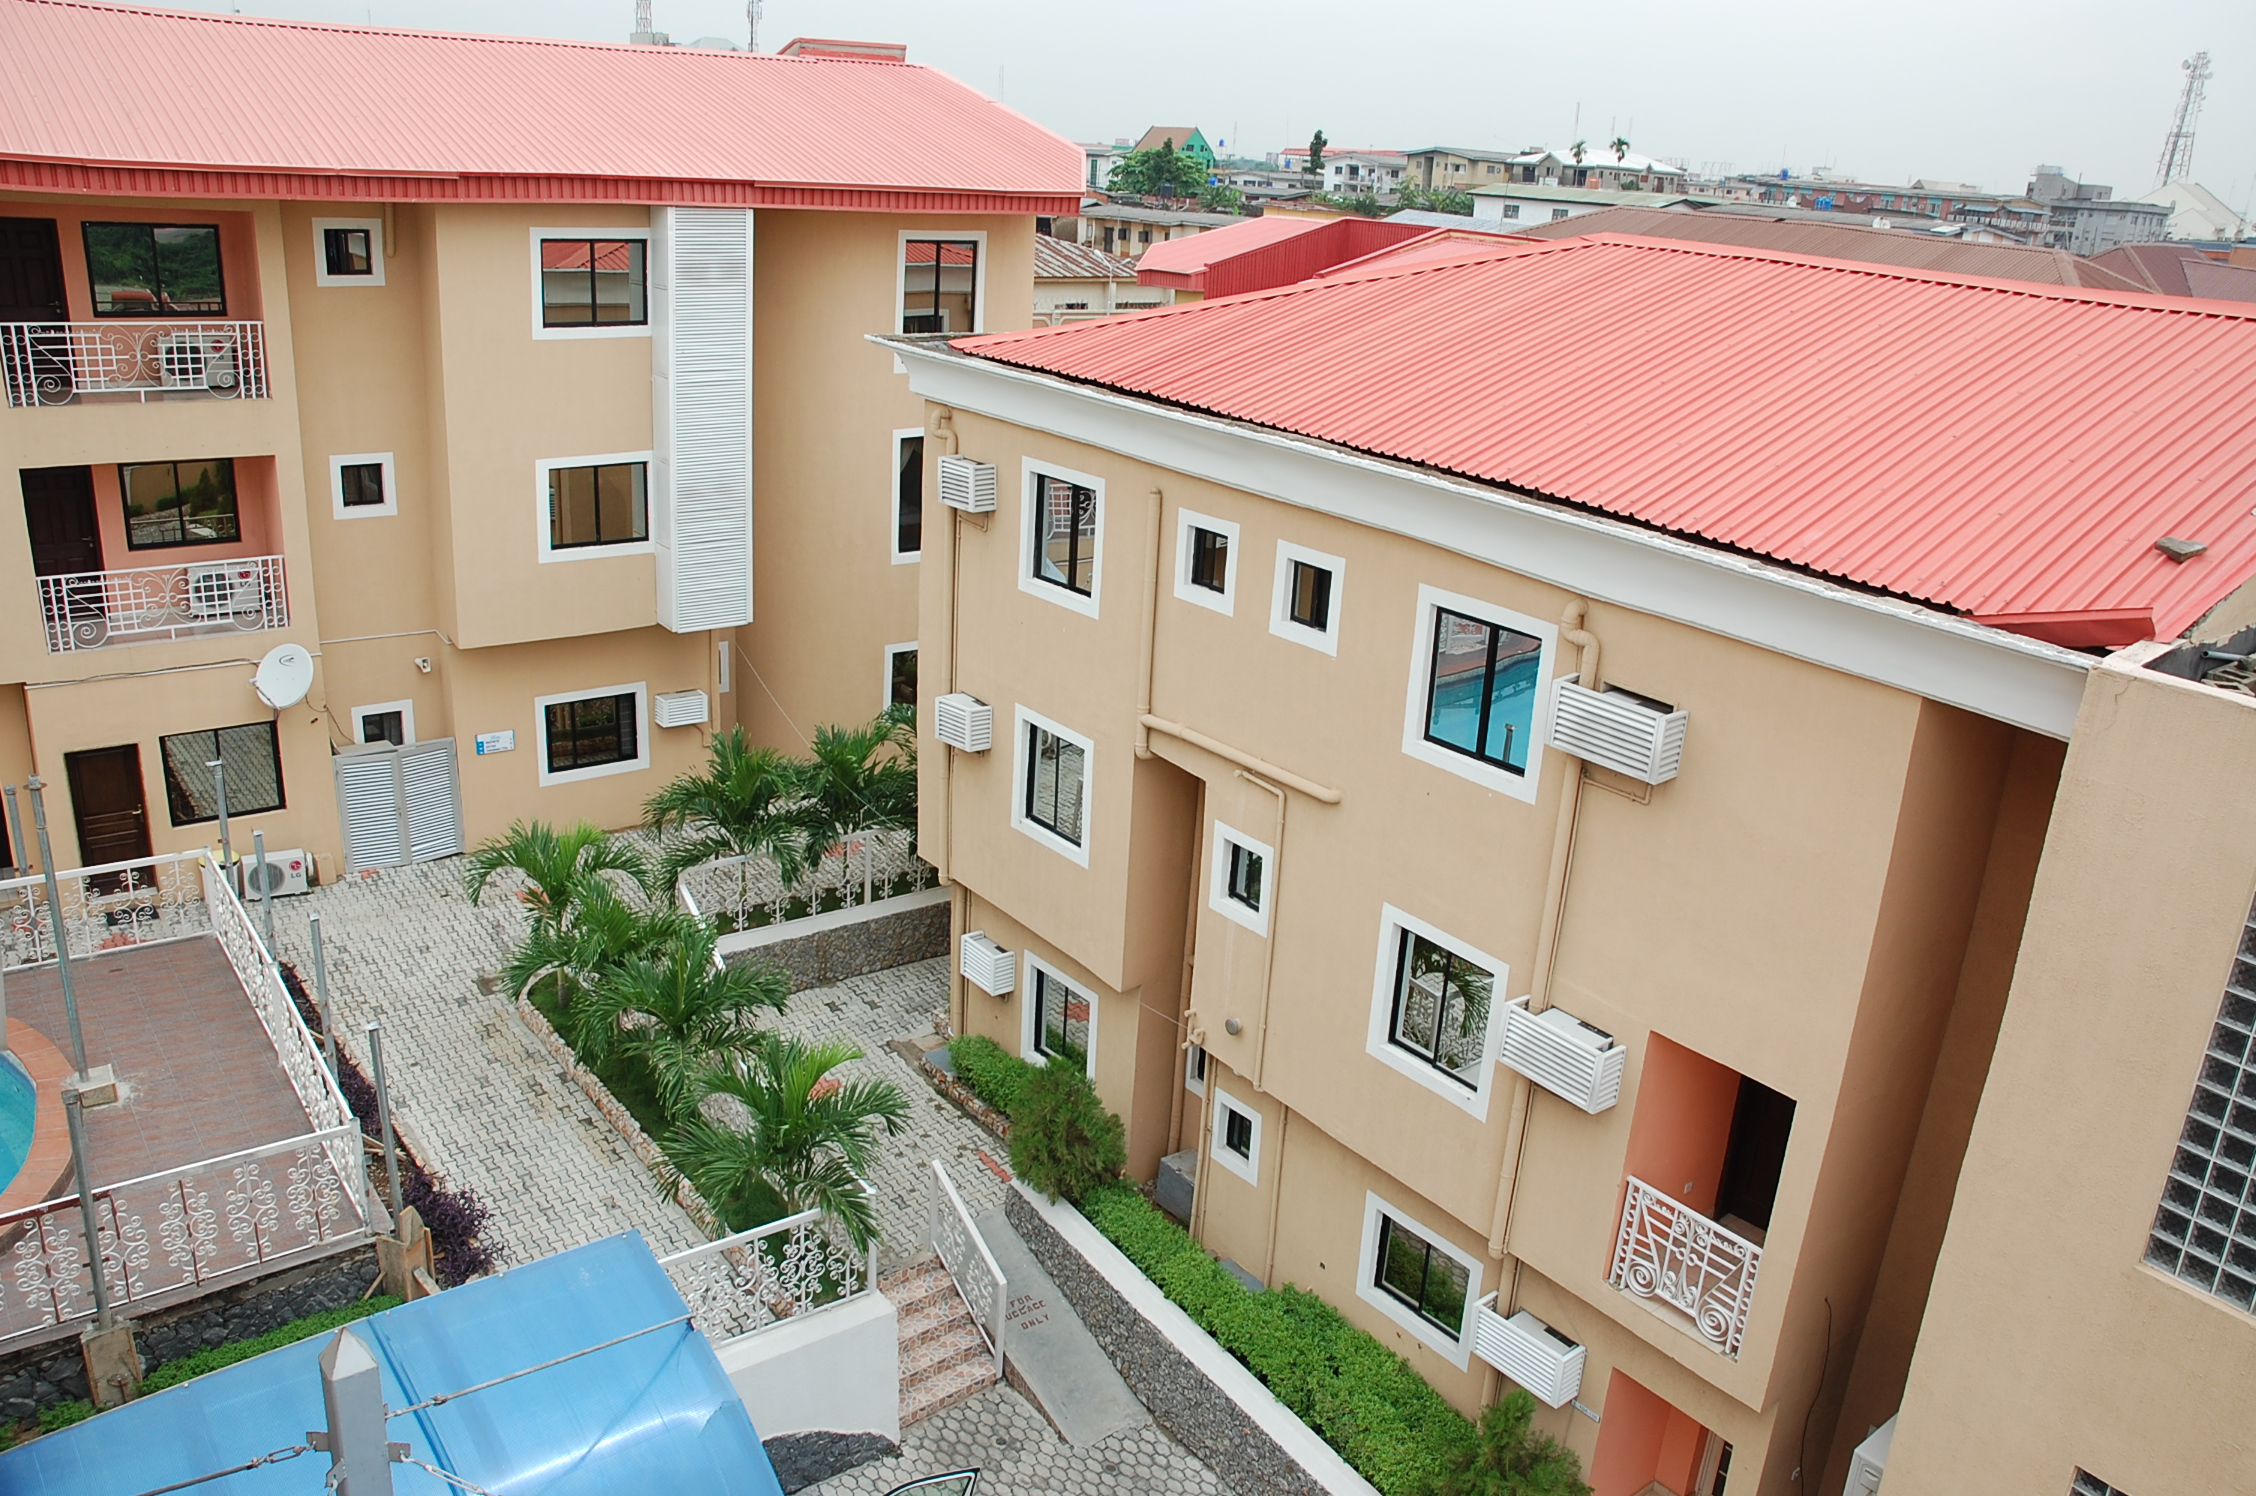 property value set to drop in nigeria highbrow areas | trendy africa